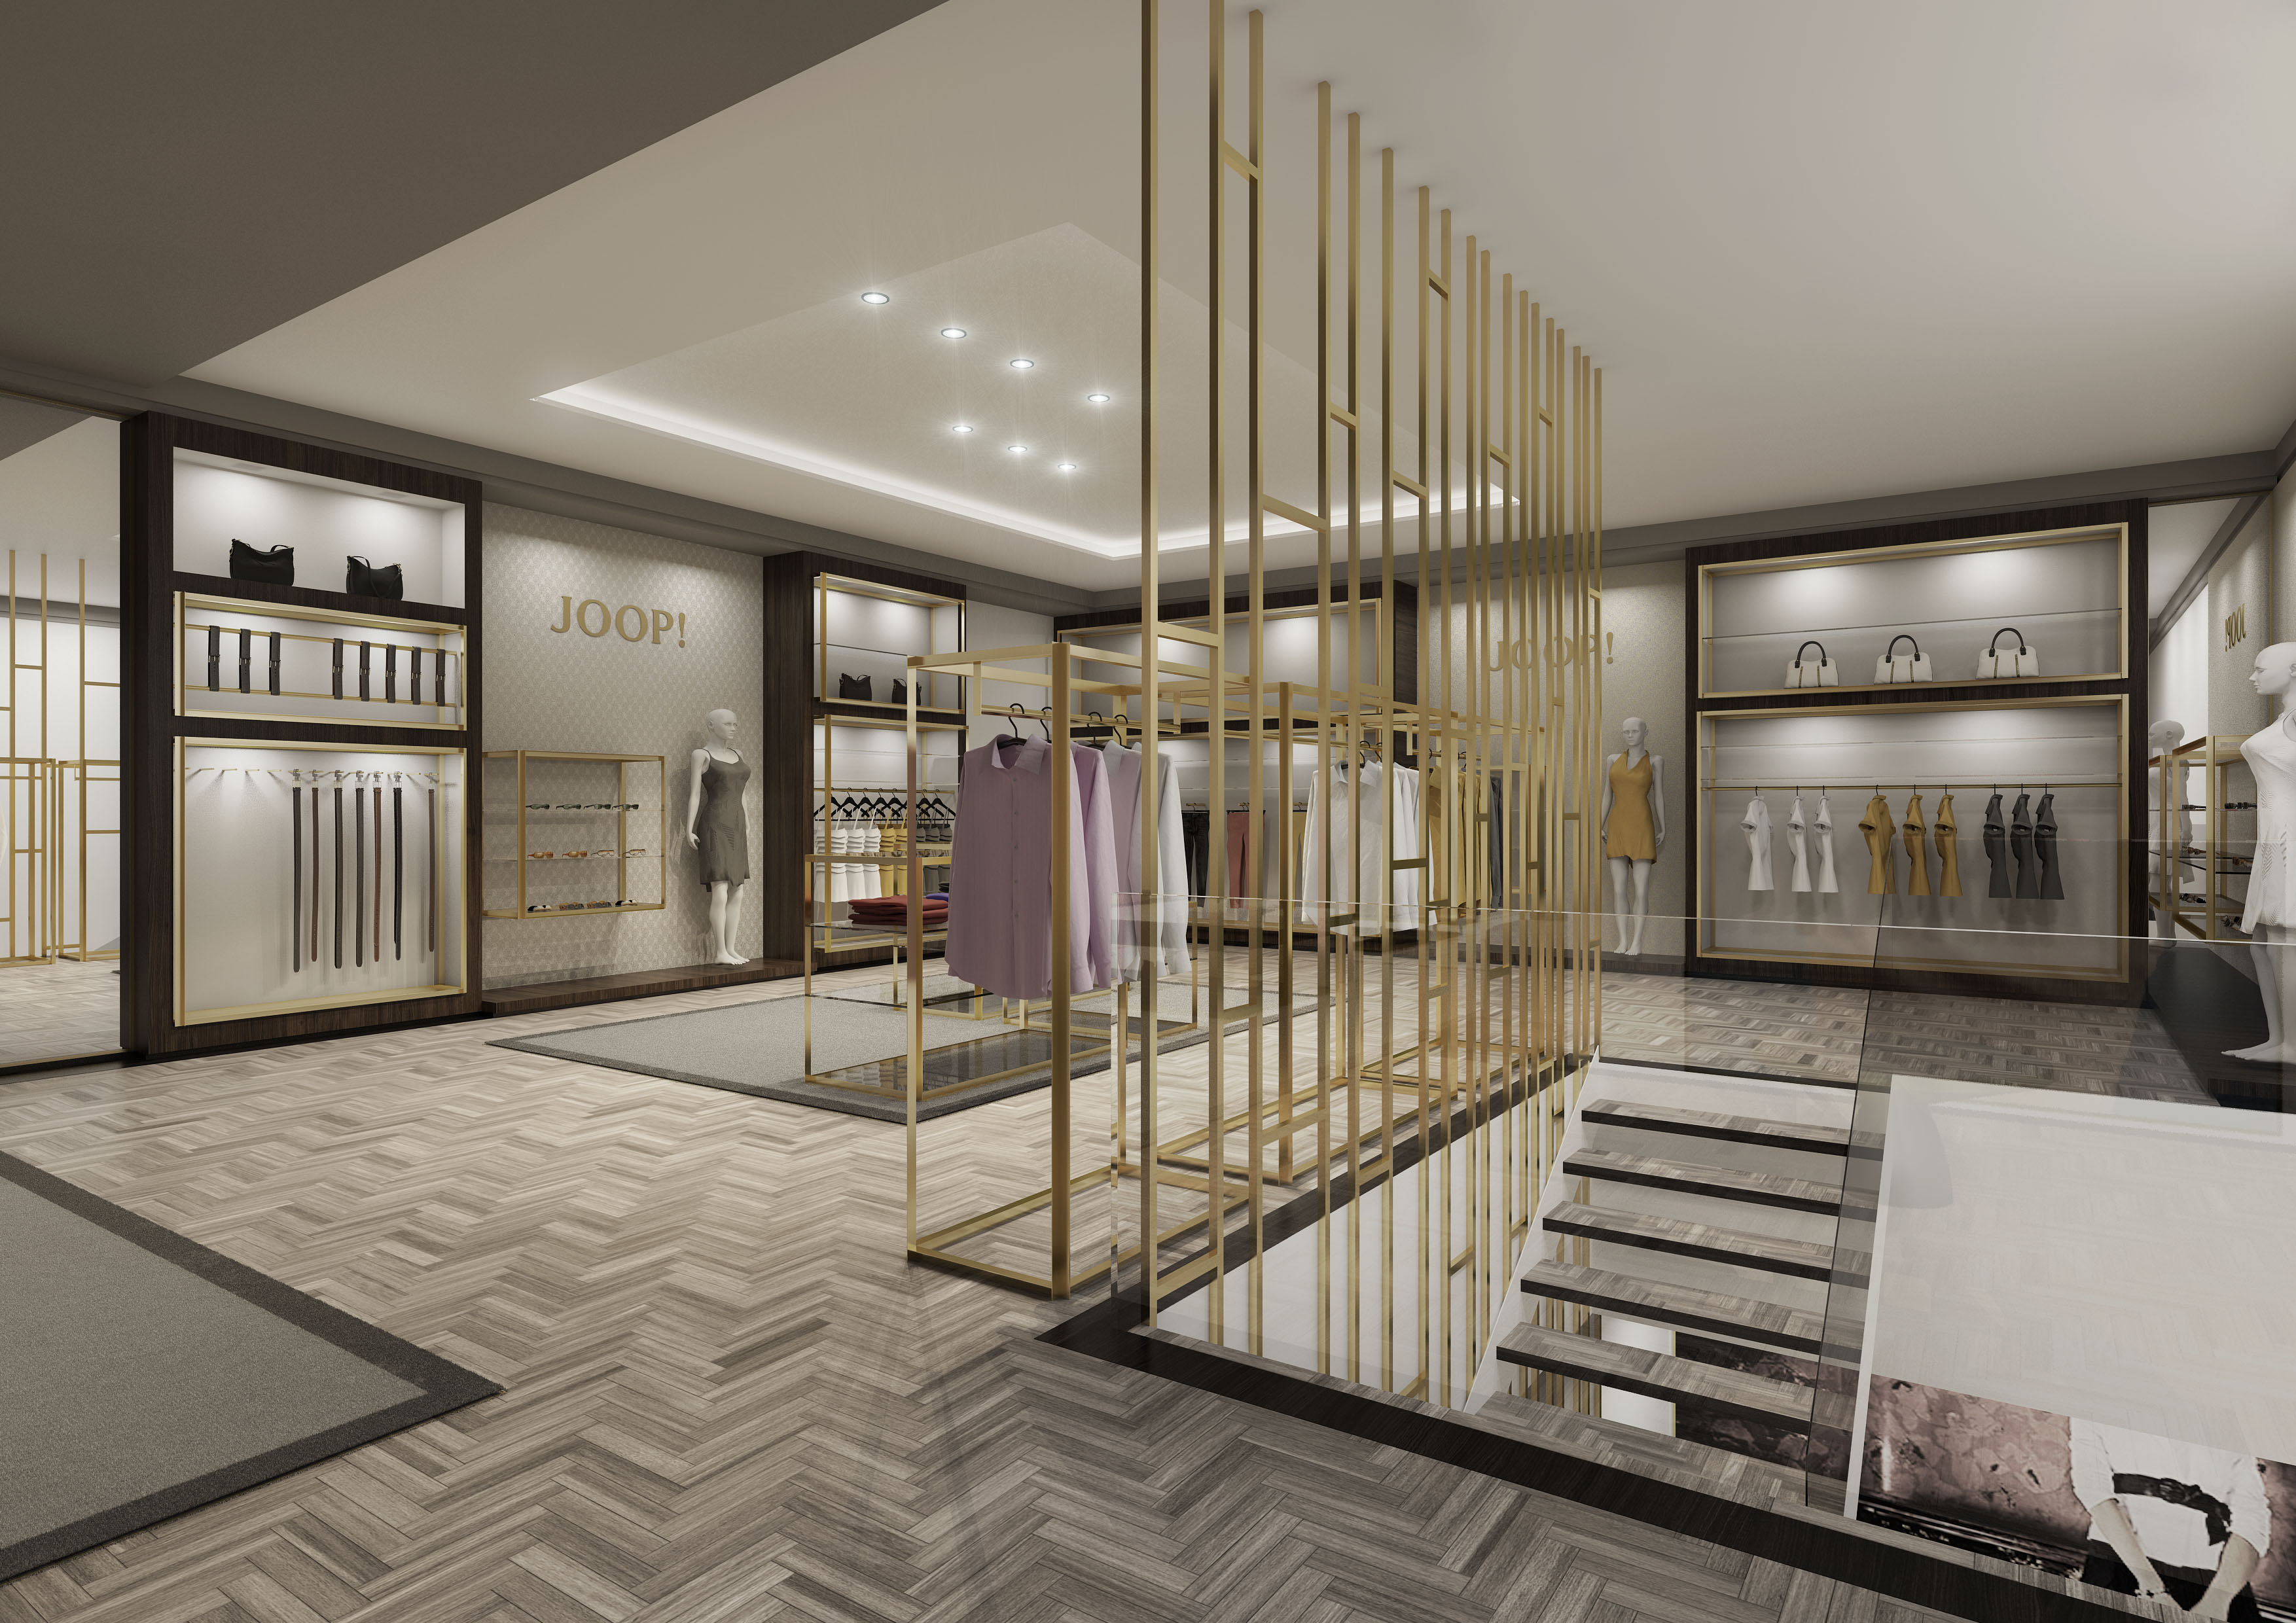 Interior Design Düsseldorf Idea 1093041: Joop! Fashion Retail By Interior Design By ...